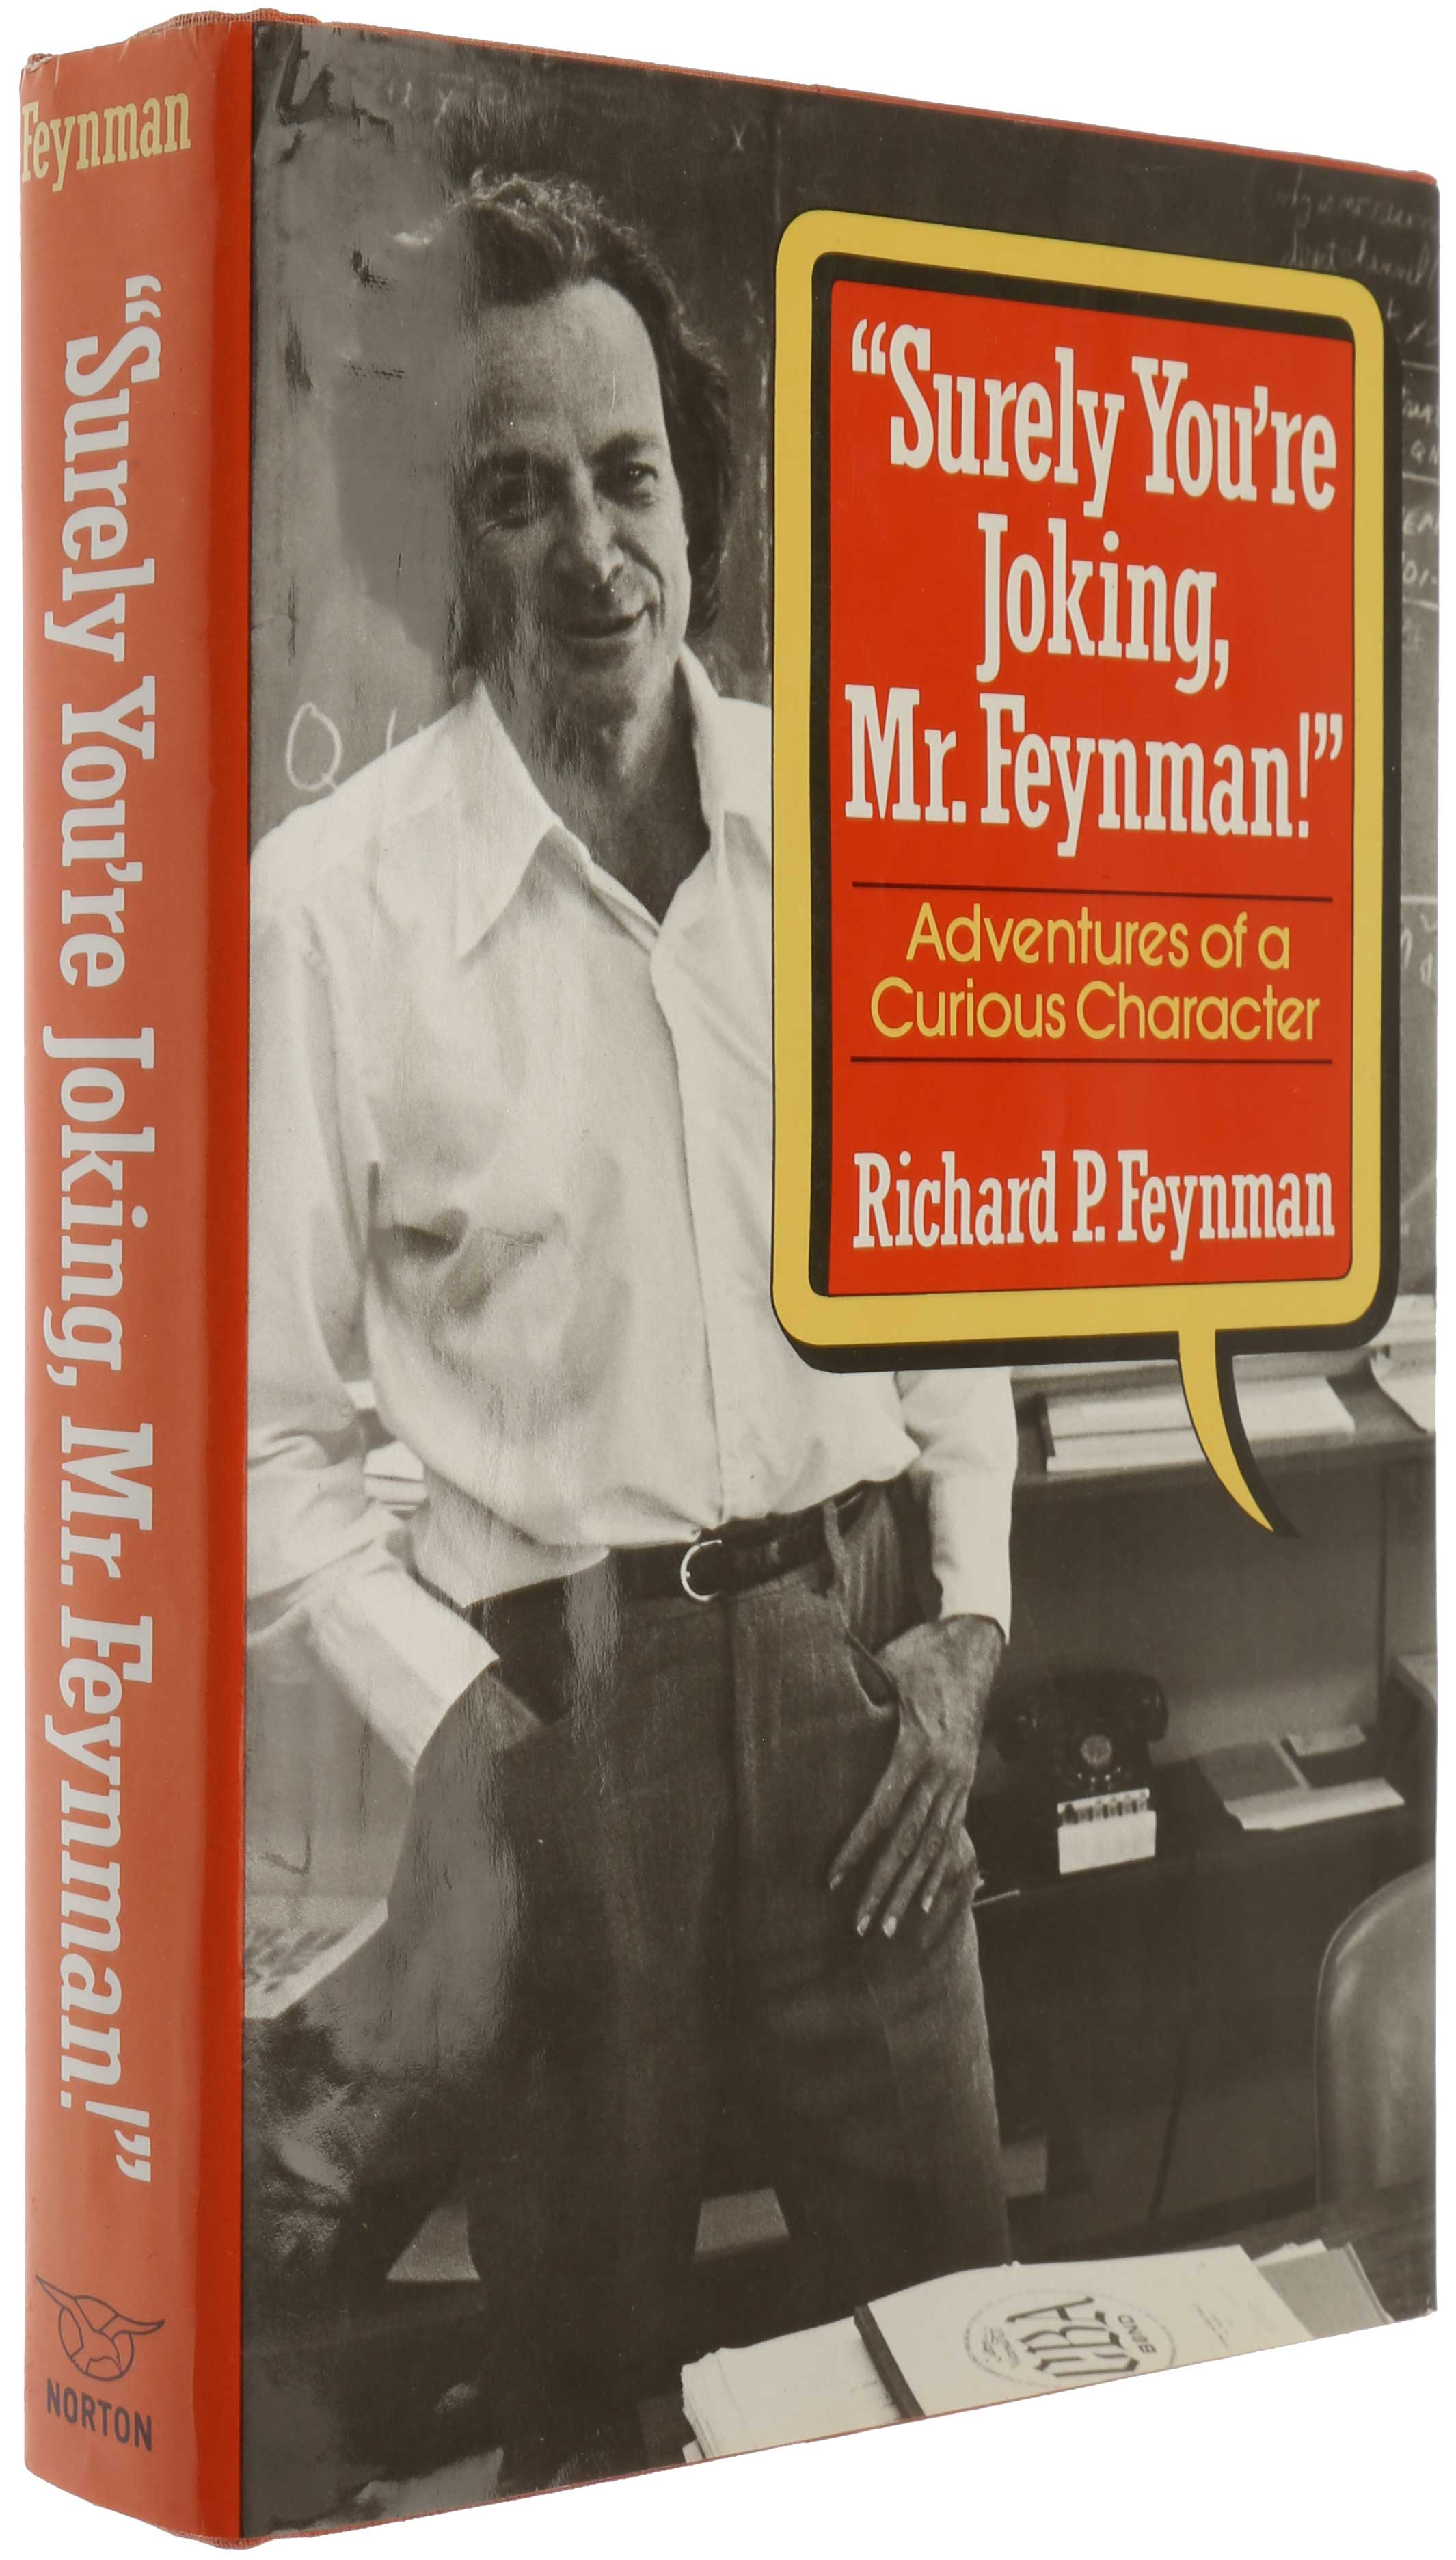 Surely You're Joking Mr. Feynman! Adventures of a Curious Character, as told to Ralph Leighton. Richard Phillips FEYNMAN.